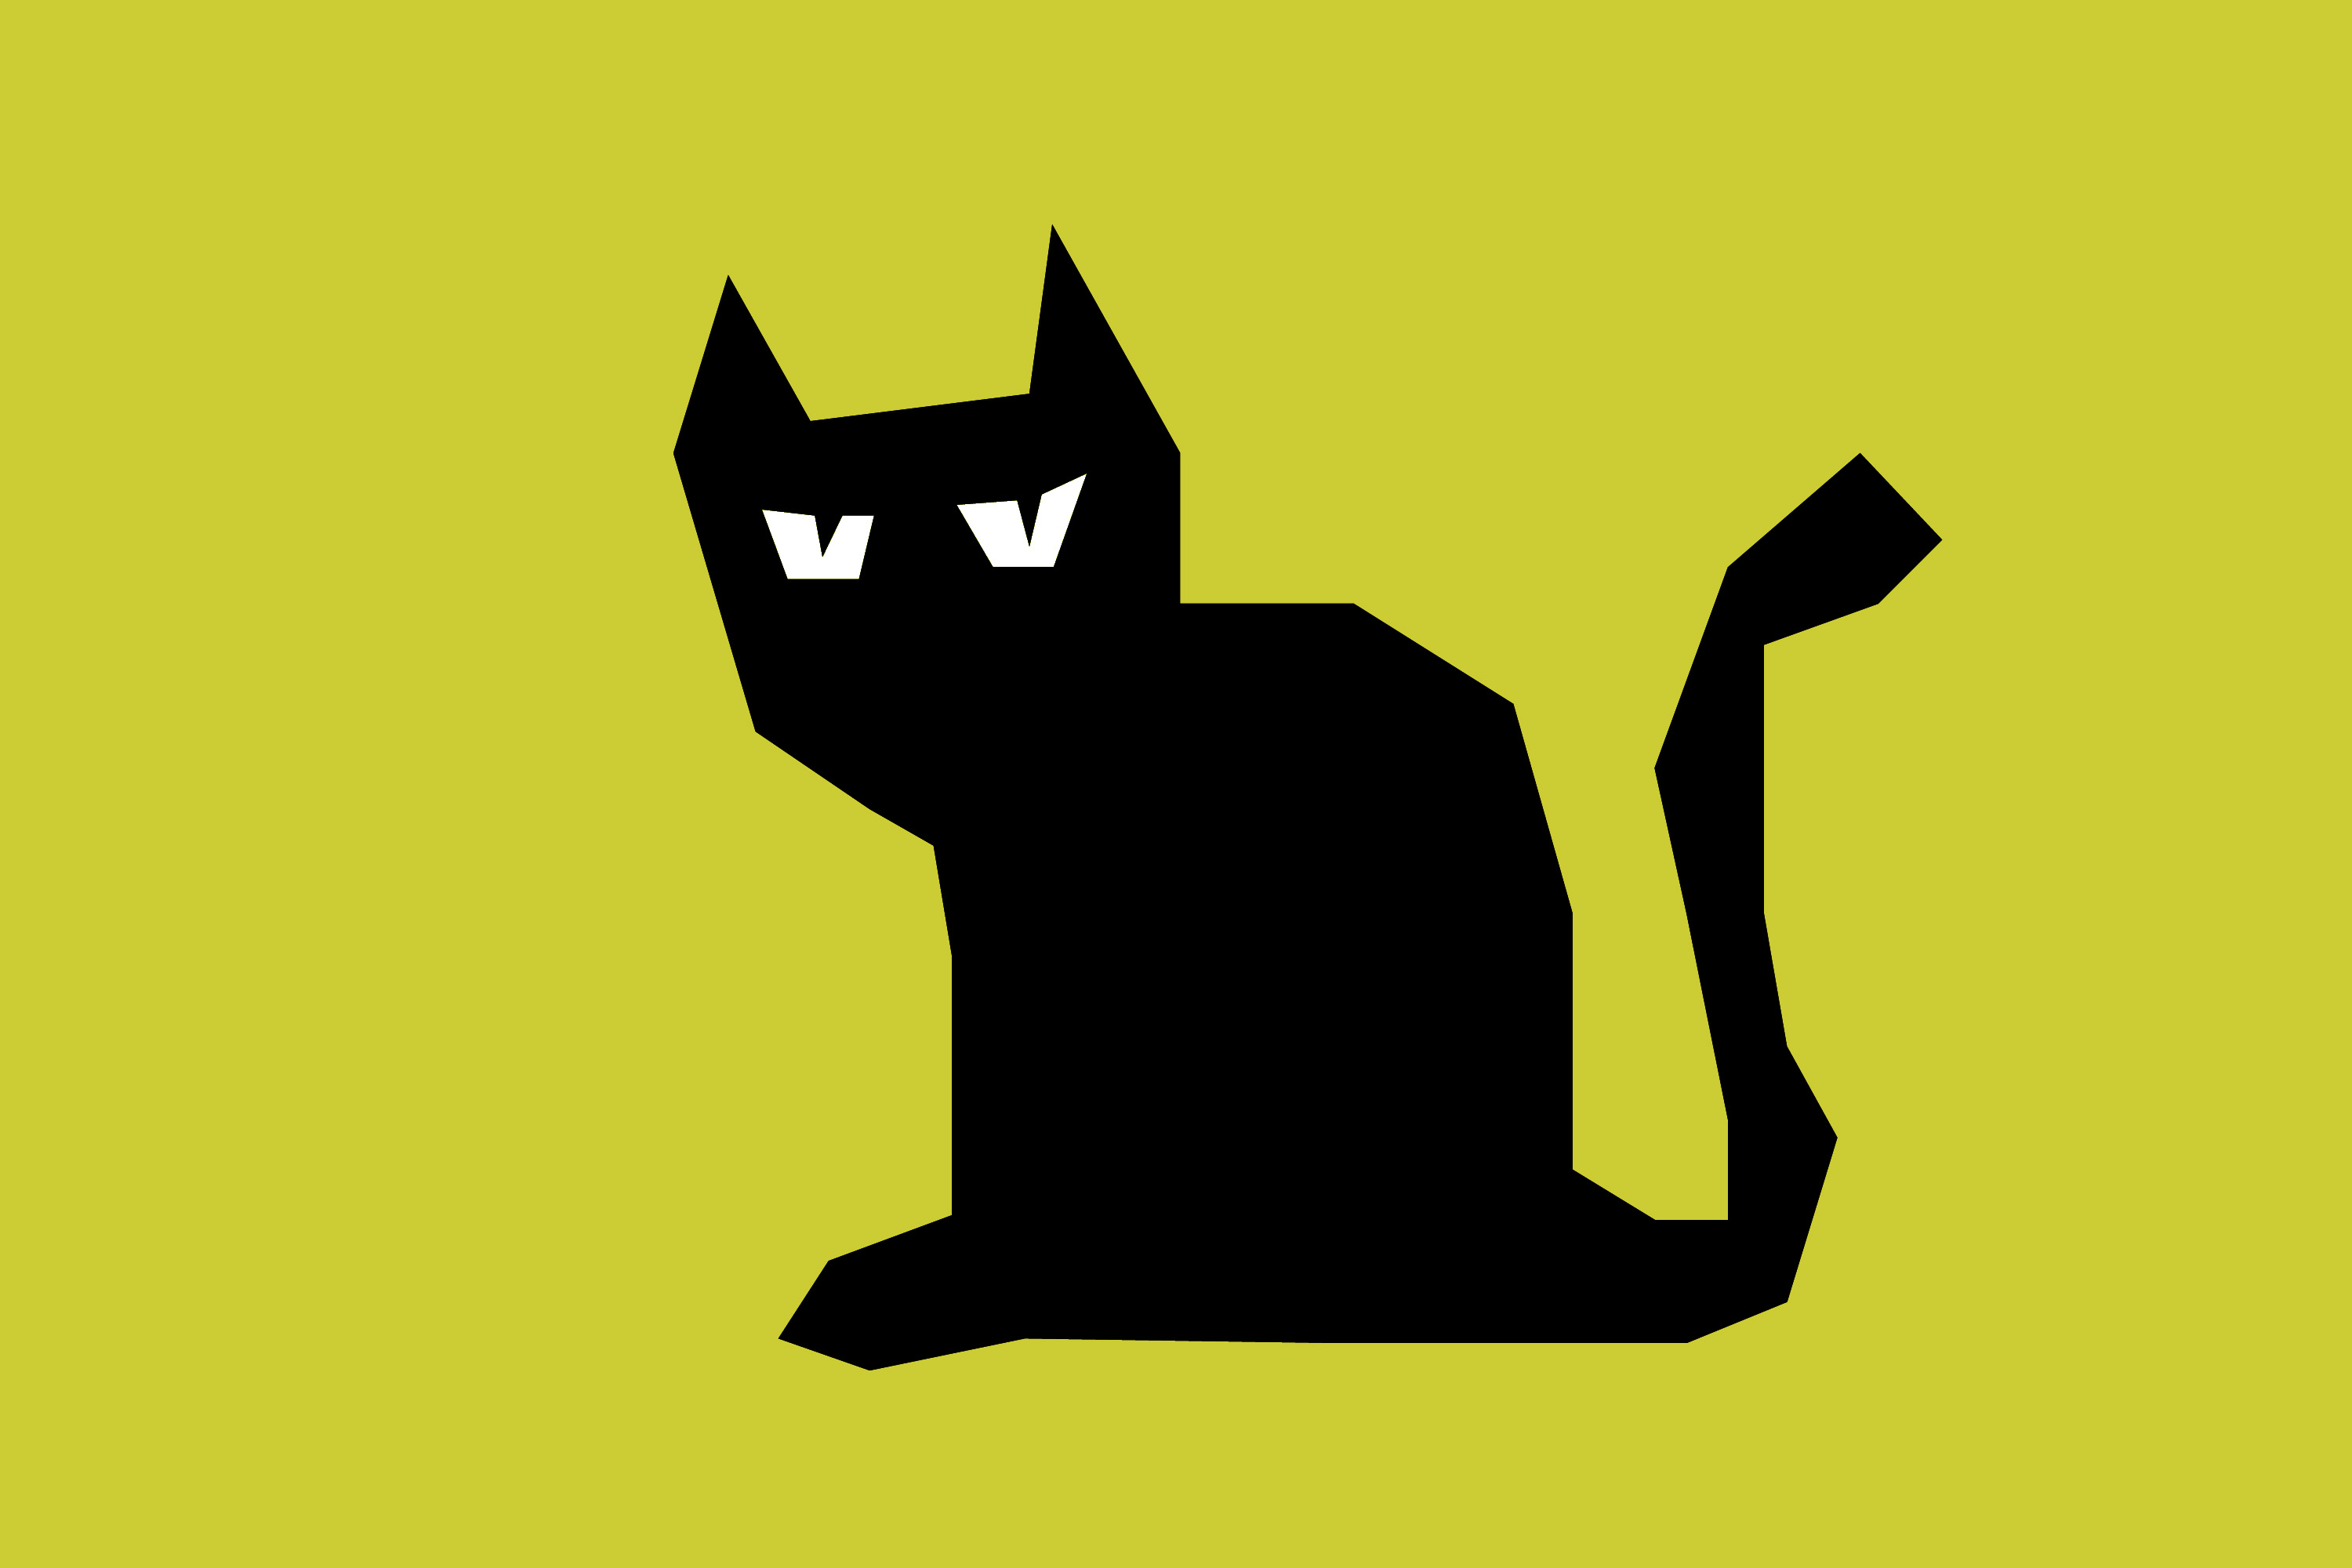 Drawn Black Cat On A Yellow Background Free Image